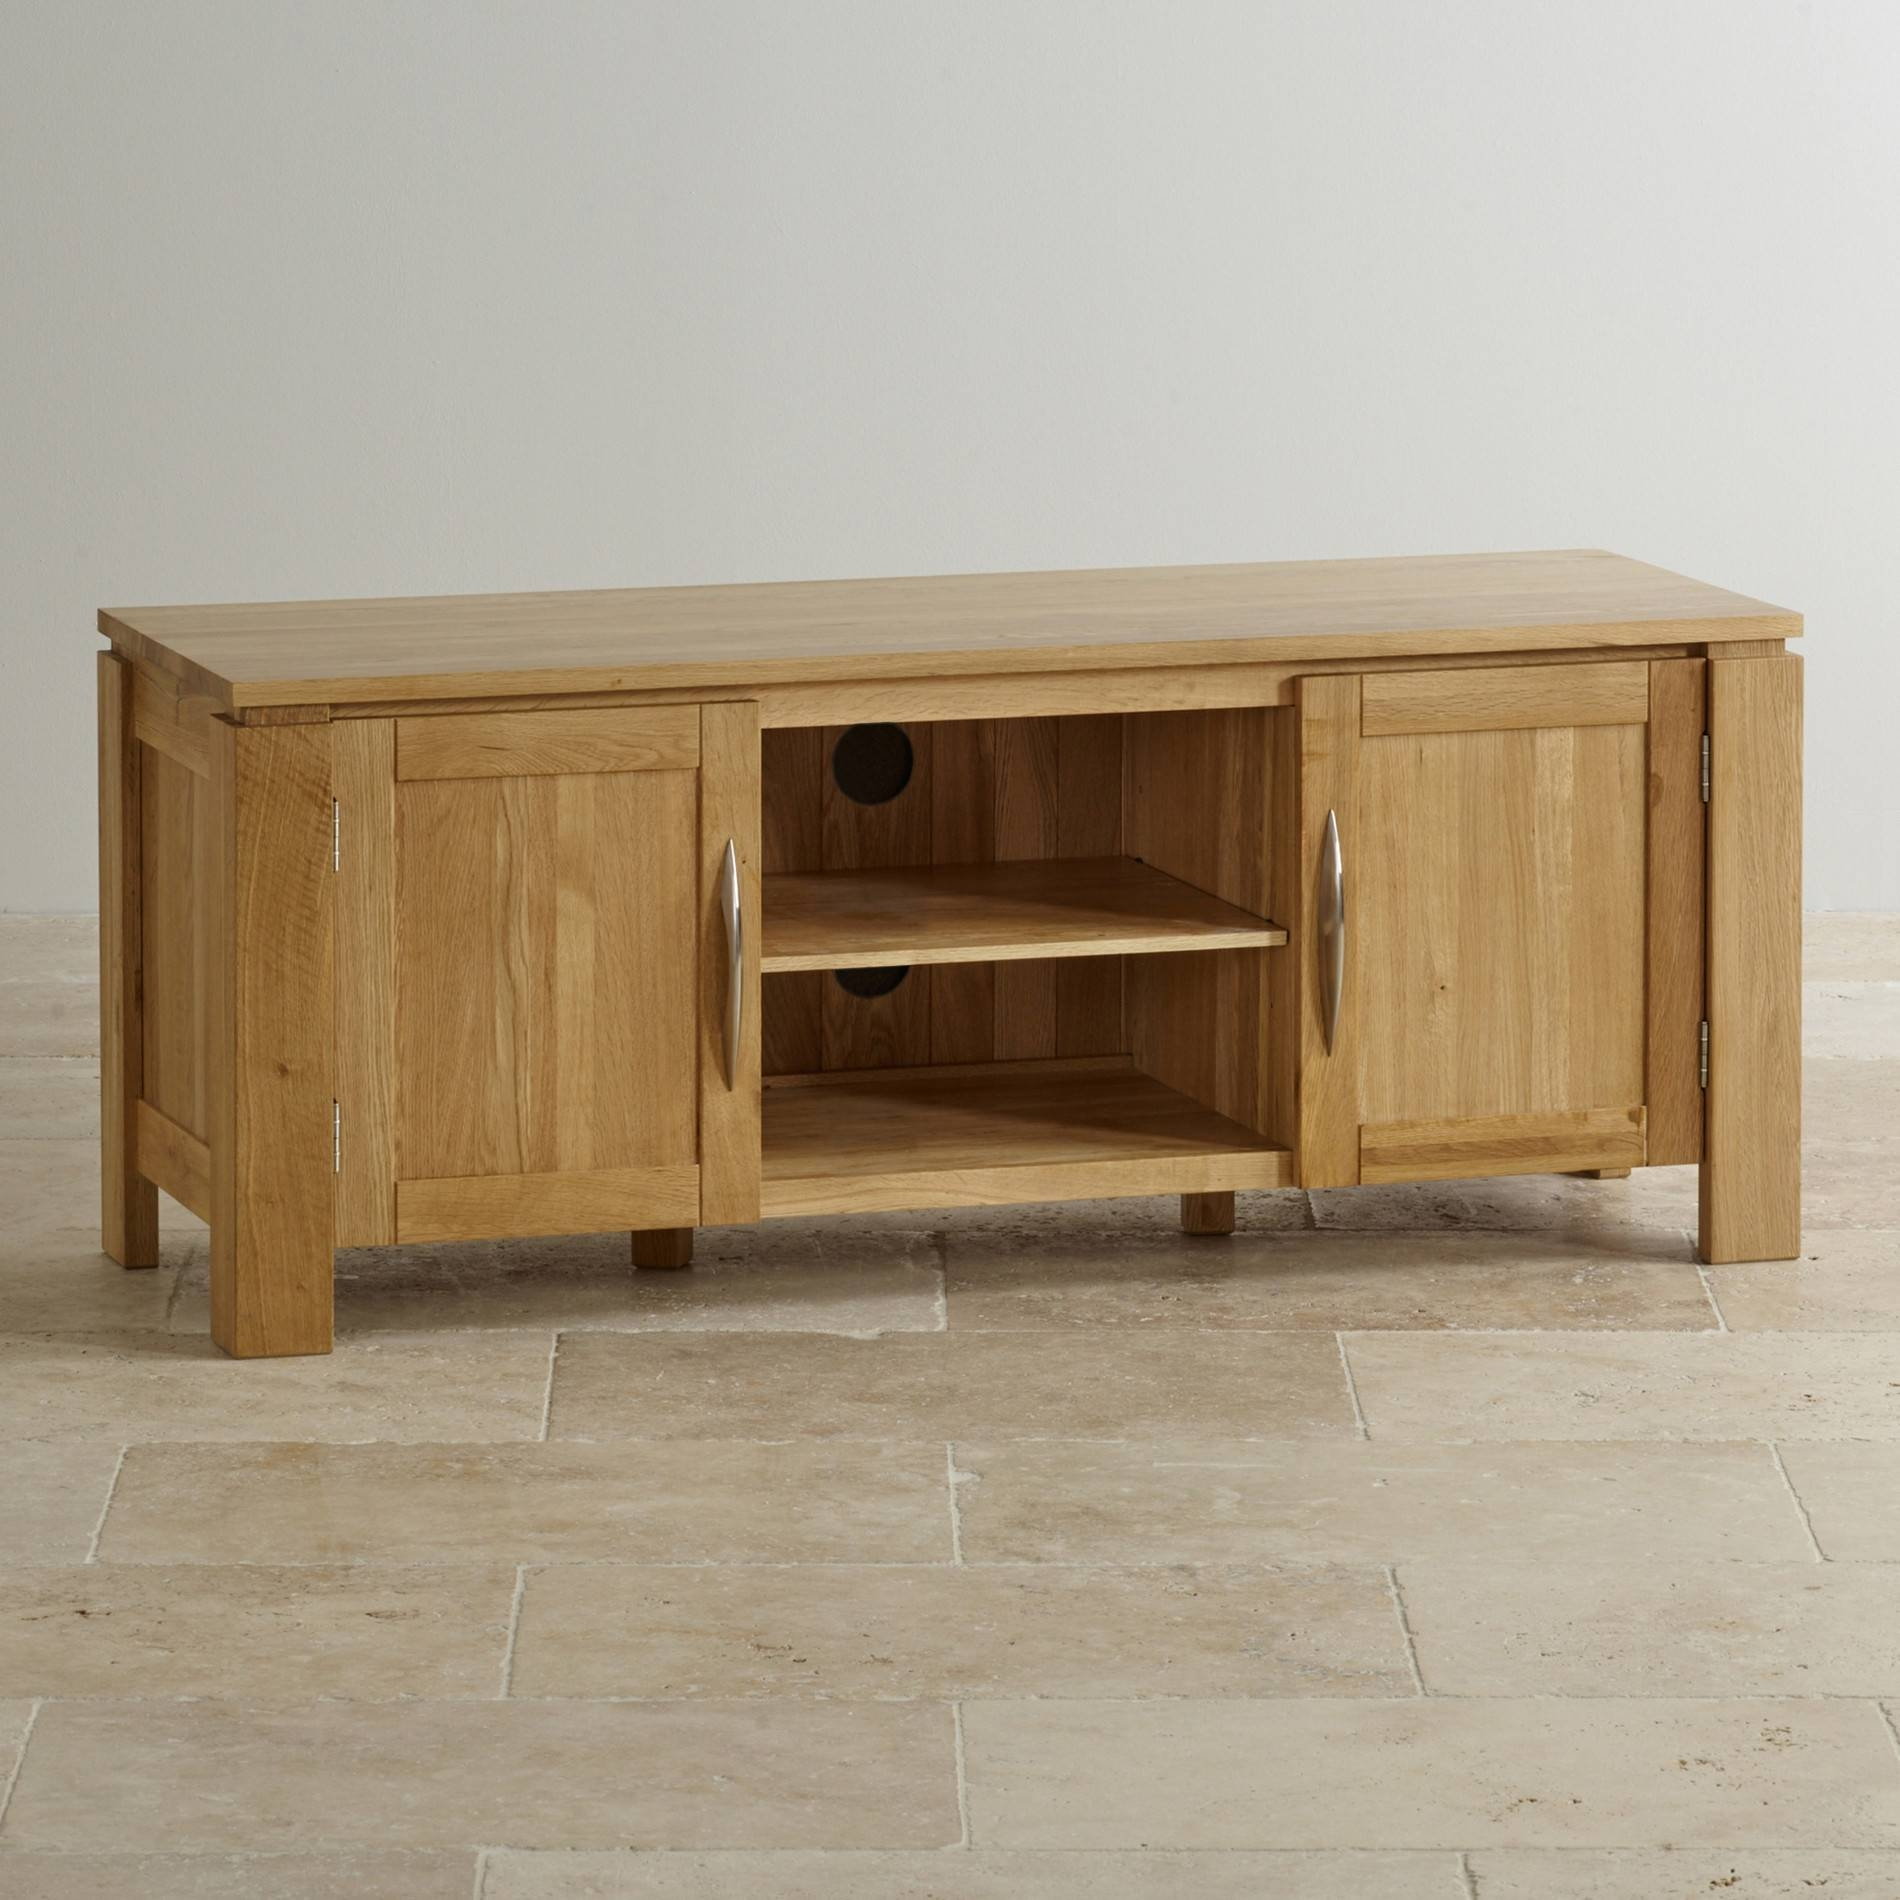 Galway Tv Cabinet In Natural Solid Oak | Oak Furniture Land inside Oak Tv Cabinets With Doors (Image 6 of 15)